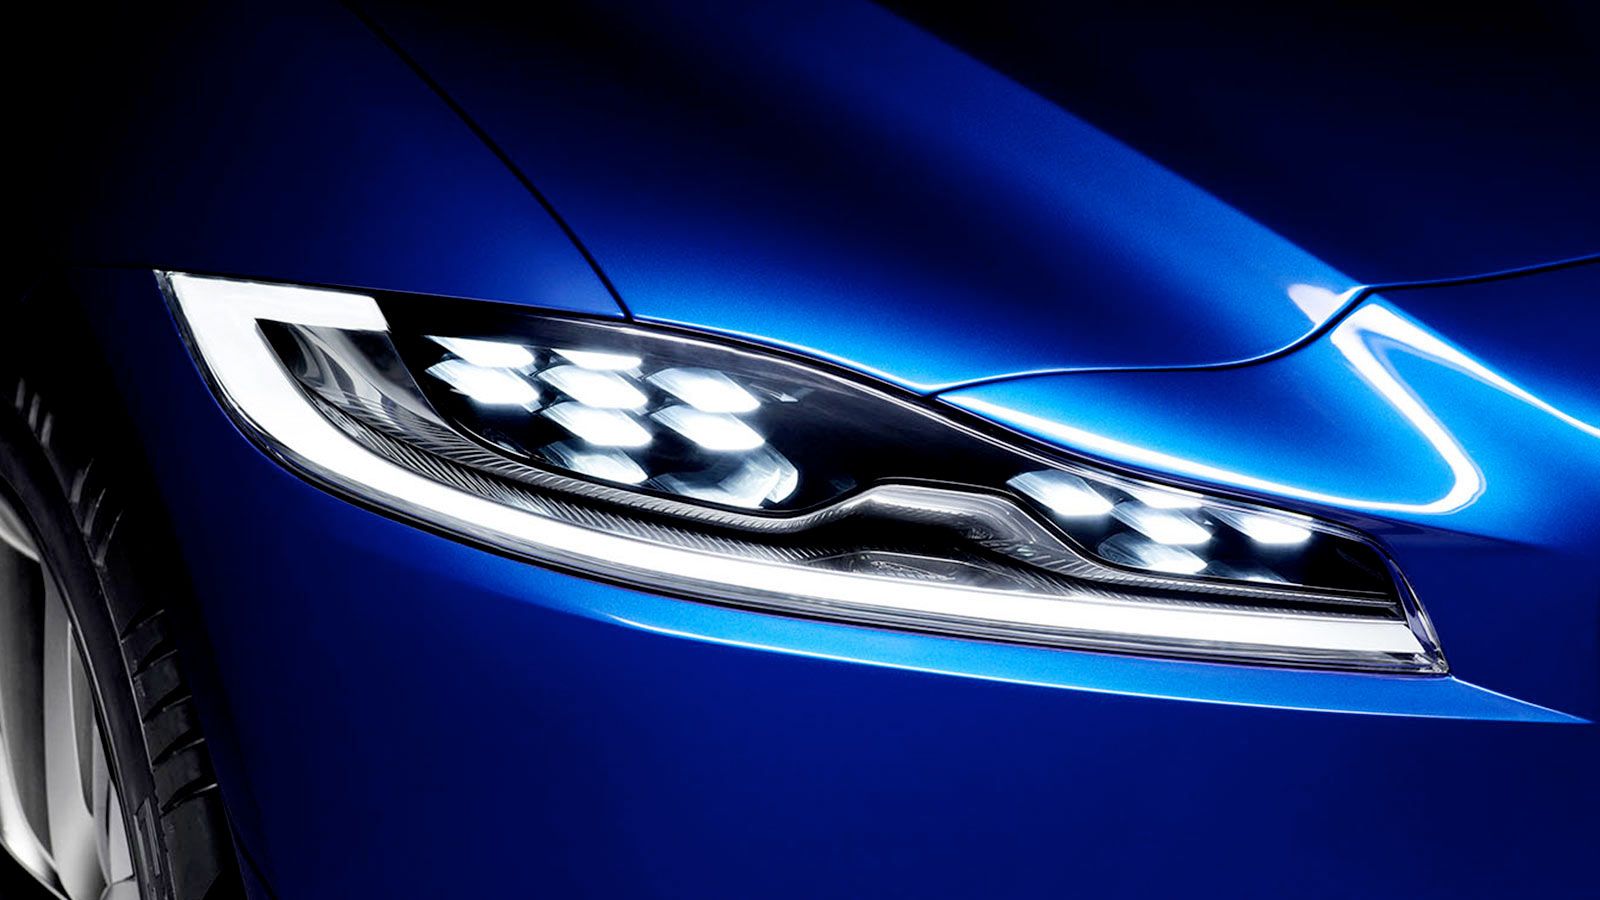 Jaguar C-X17 front Headlight.